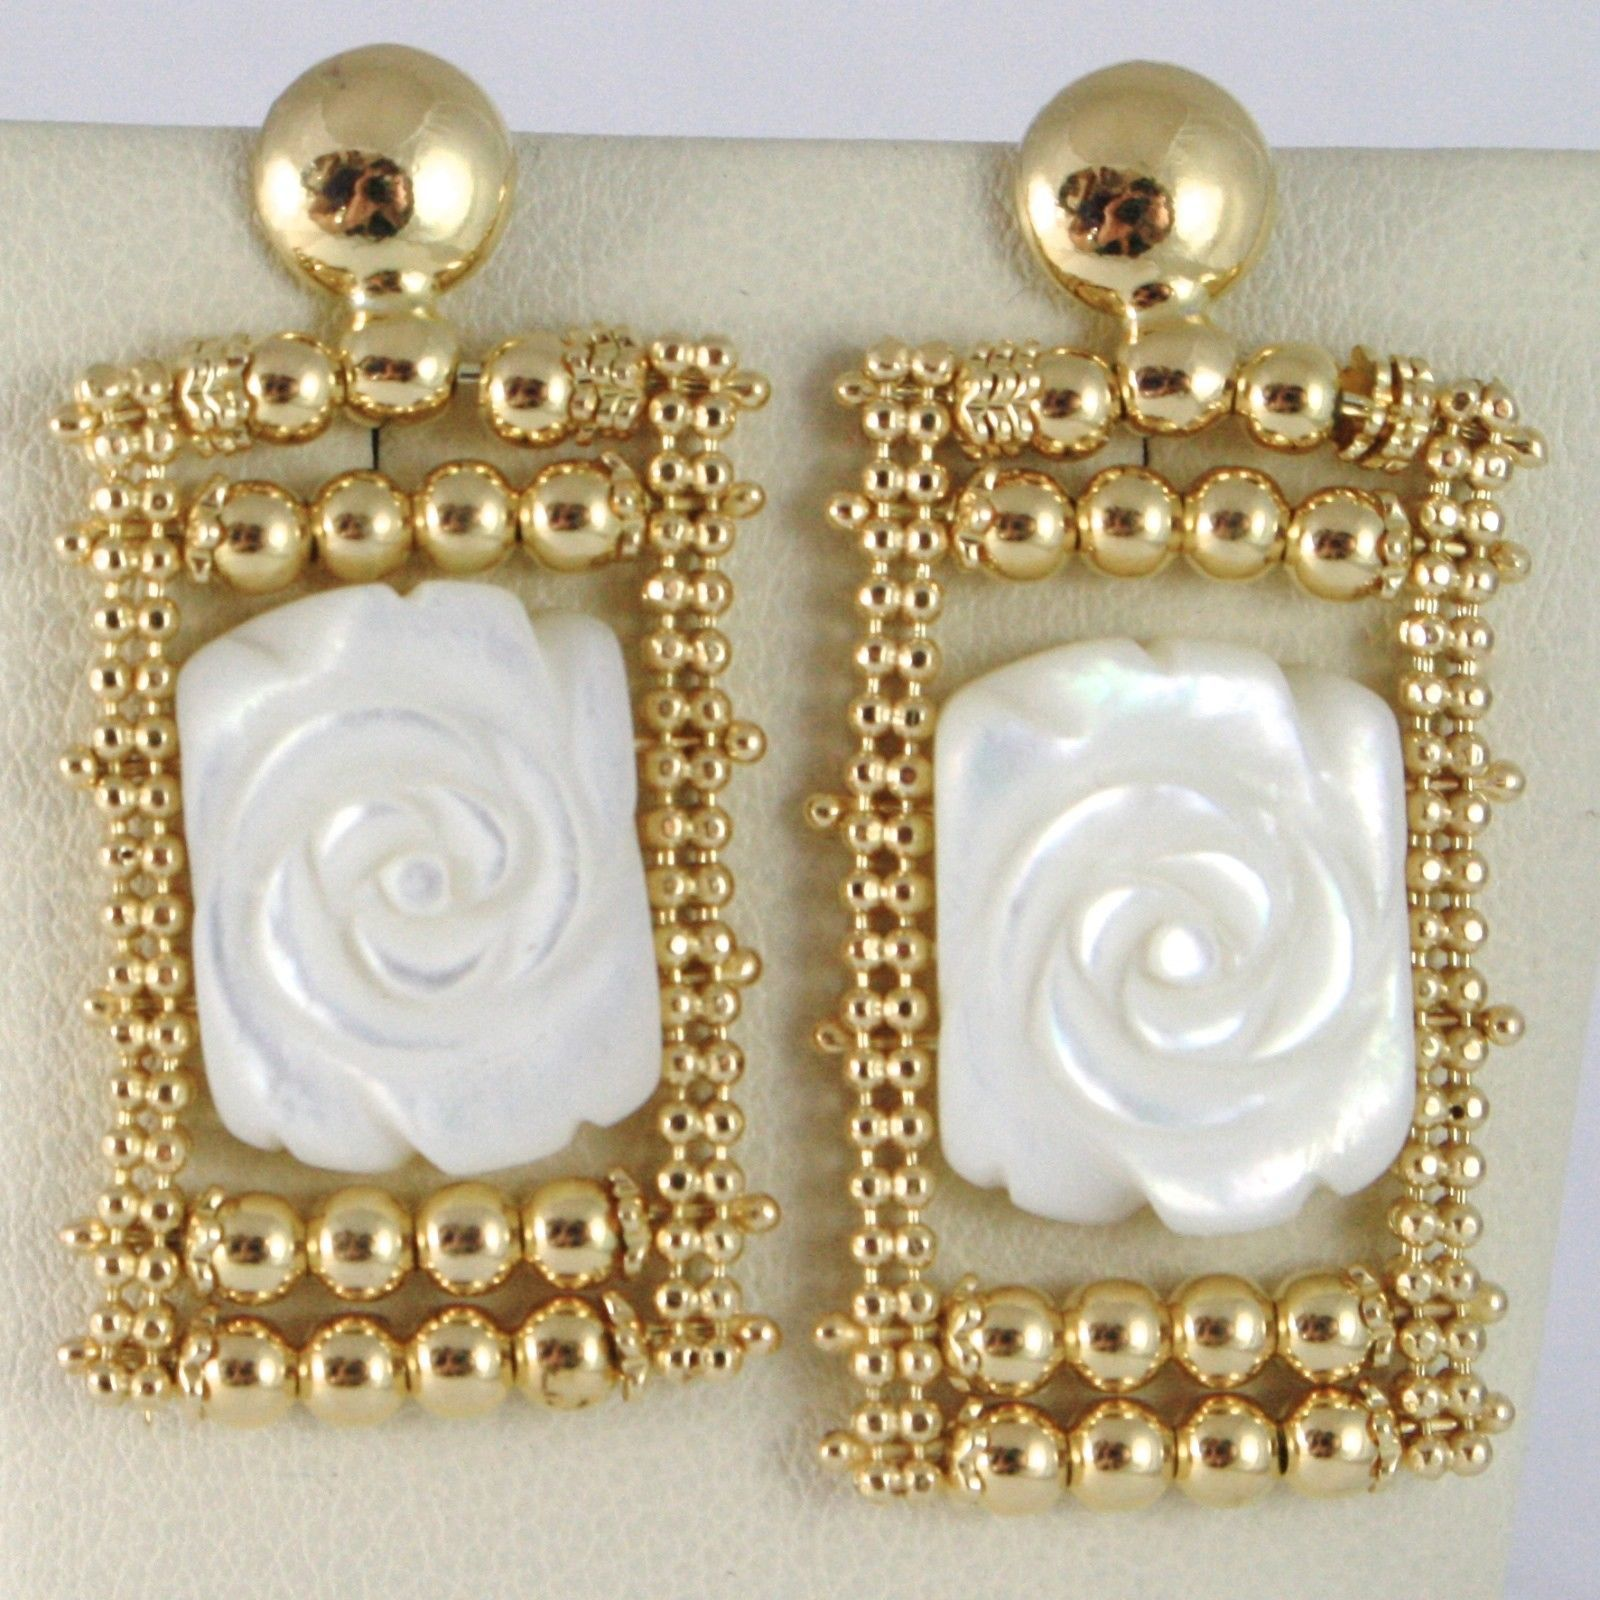 EARRINGS SILVER 925 YELLOW GOLD PLATED HANGING, MULTI WIRES, NACRE FLOWER